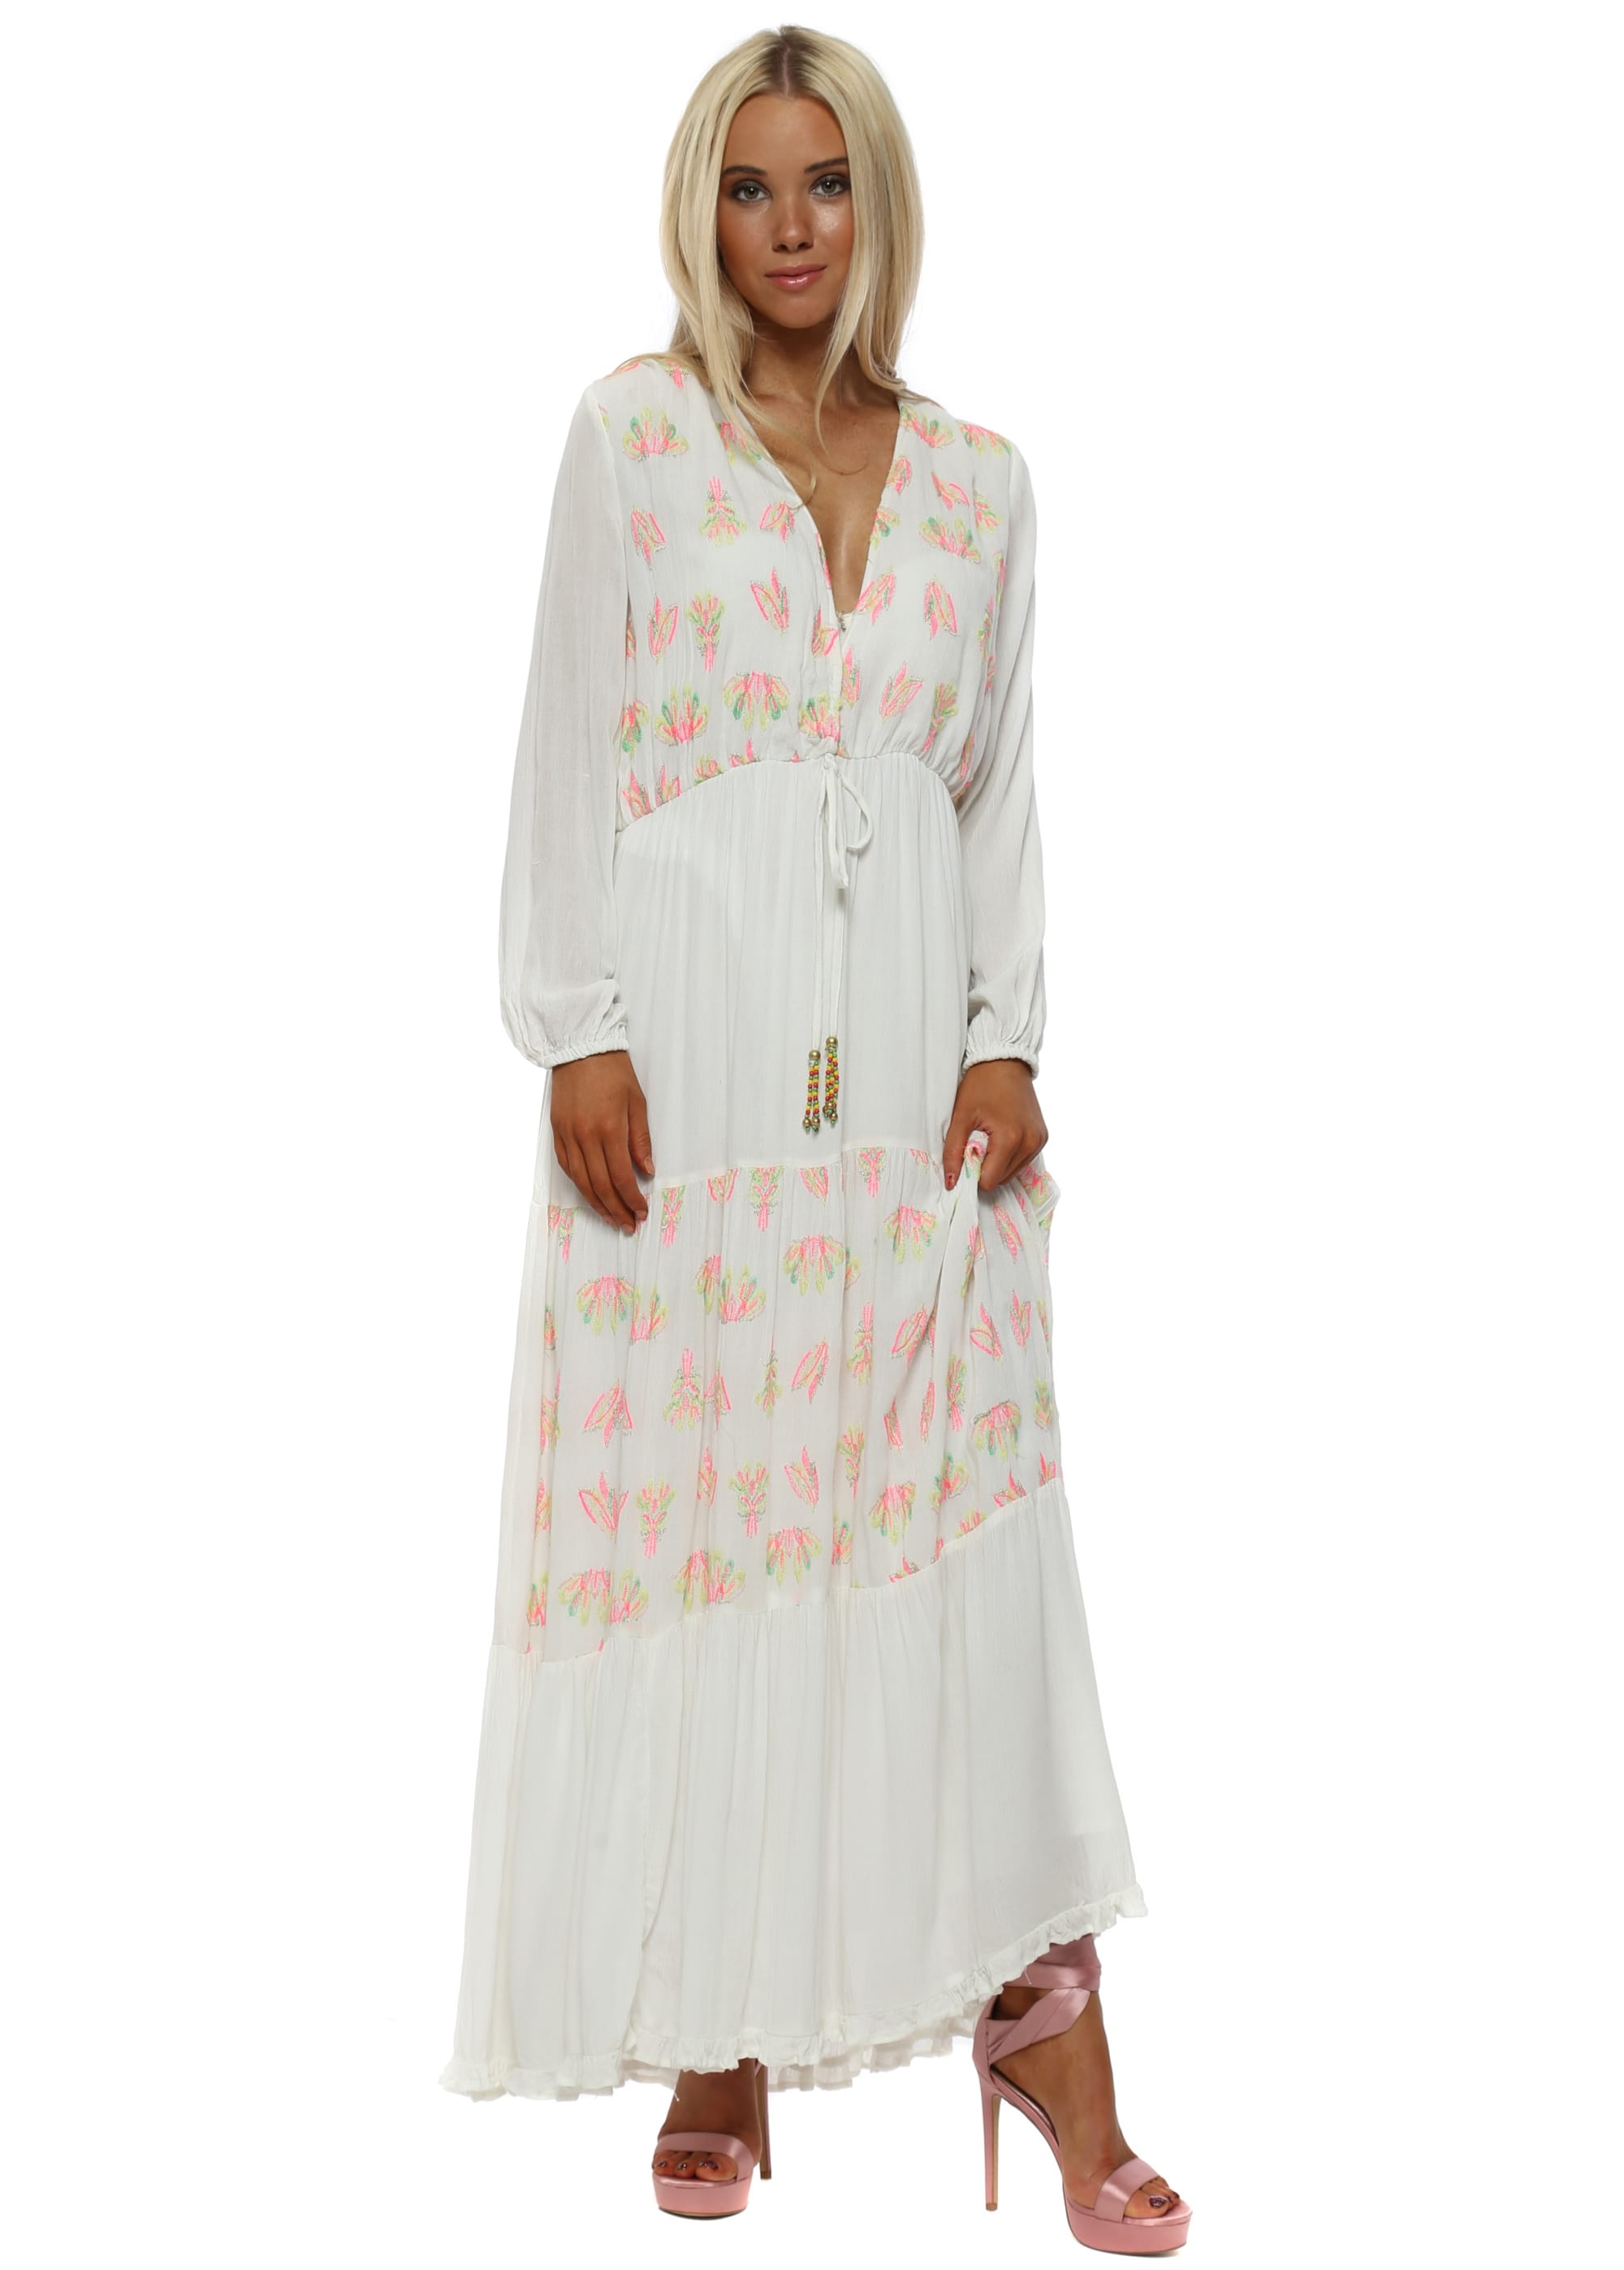 221d1423aeb Ronaly Off White Neon Embroidered Tiered Maxi Dress